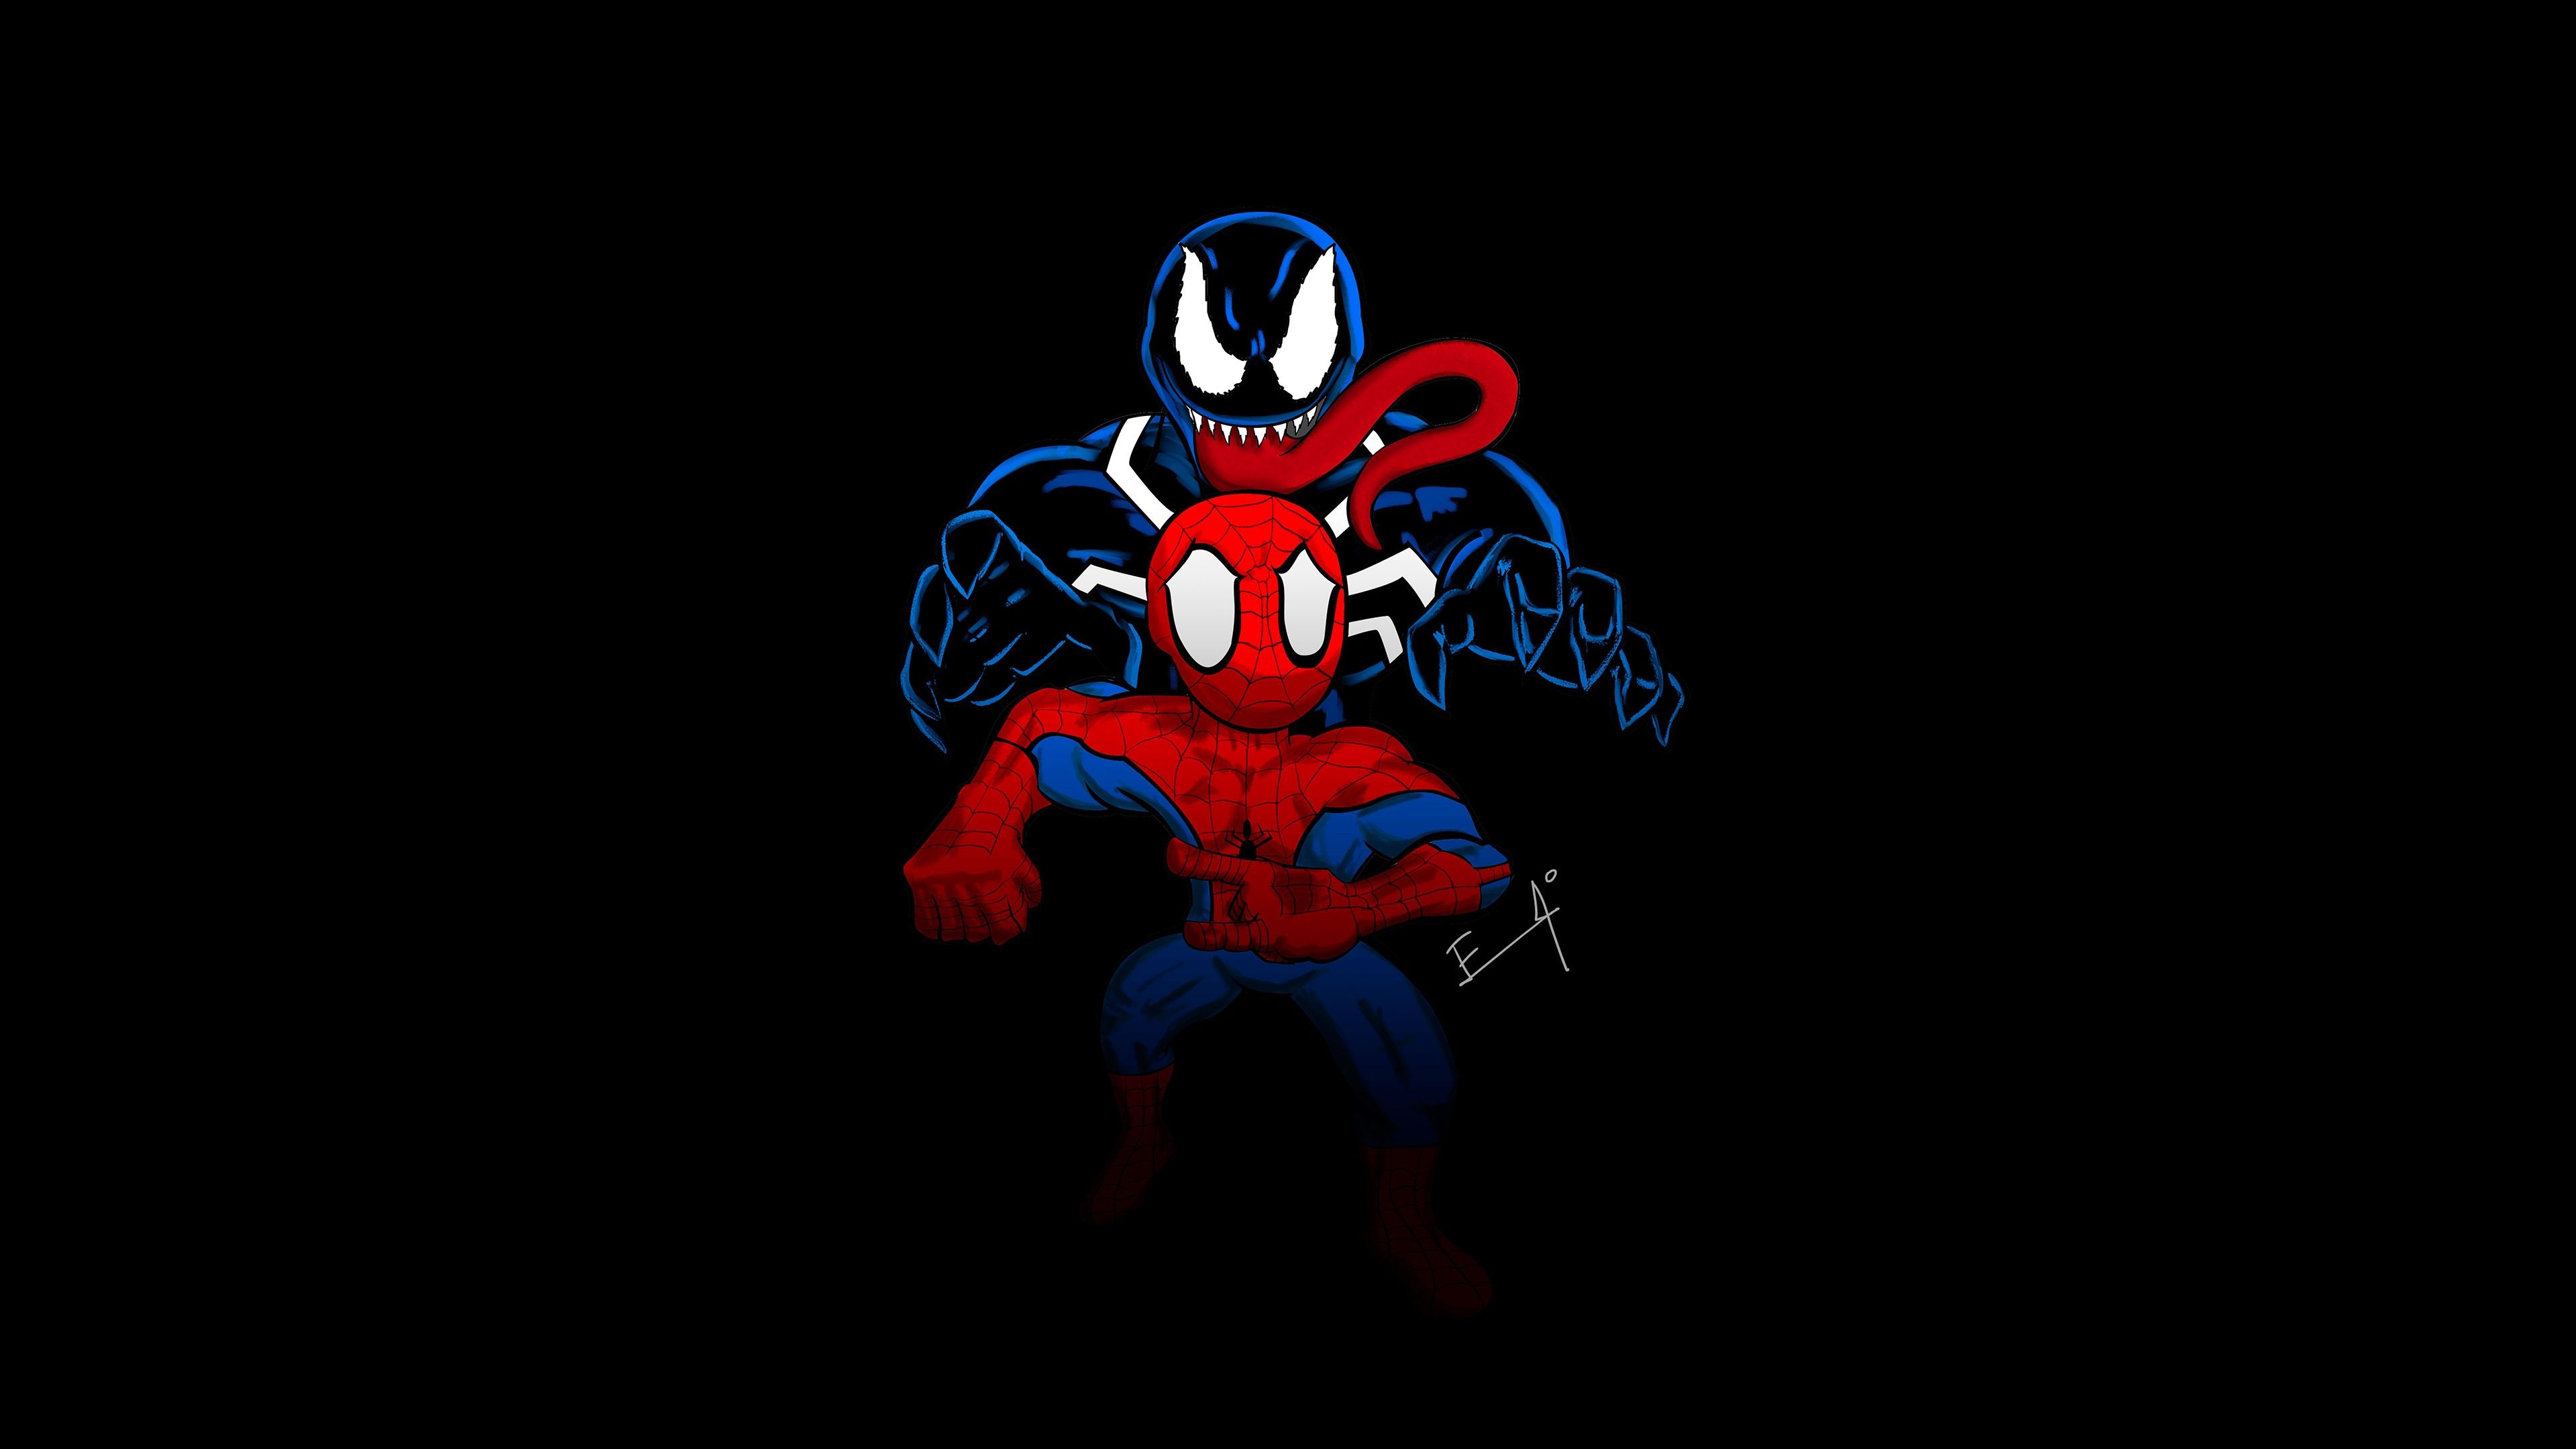 Little Spider Man And Venom 4k Venom Wallpapers Superheroes Wallpapers Spiderman Wallpapers Hd Wallpapers Be Incredible Cartoon Cartoon Wallpaper Spiderman